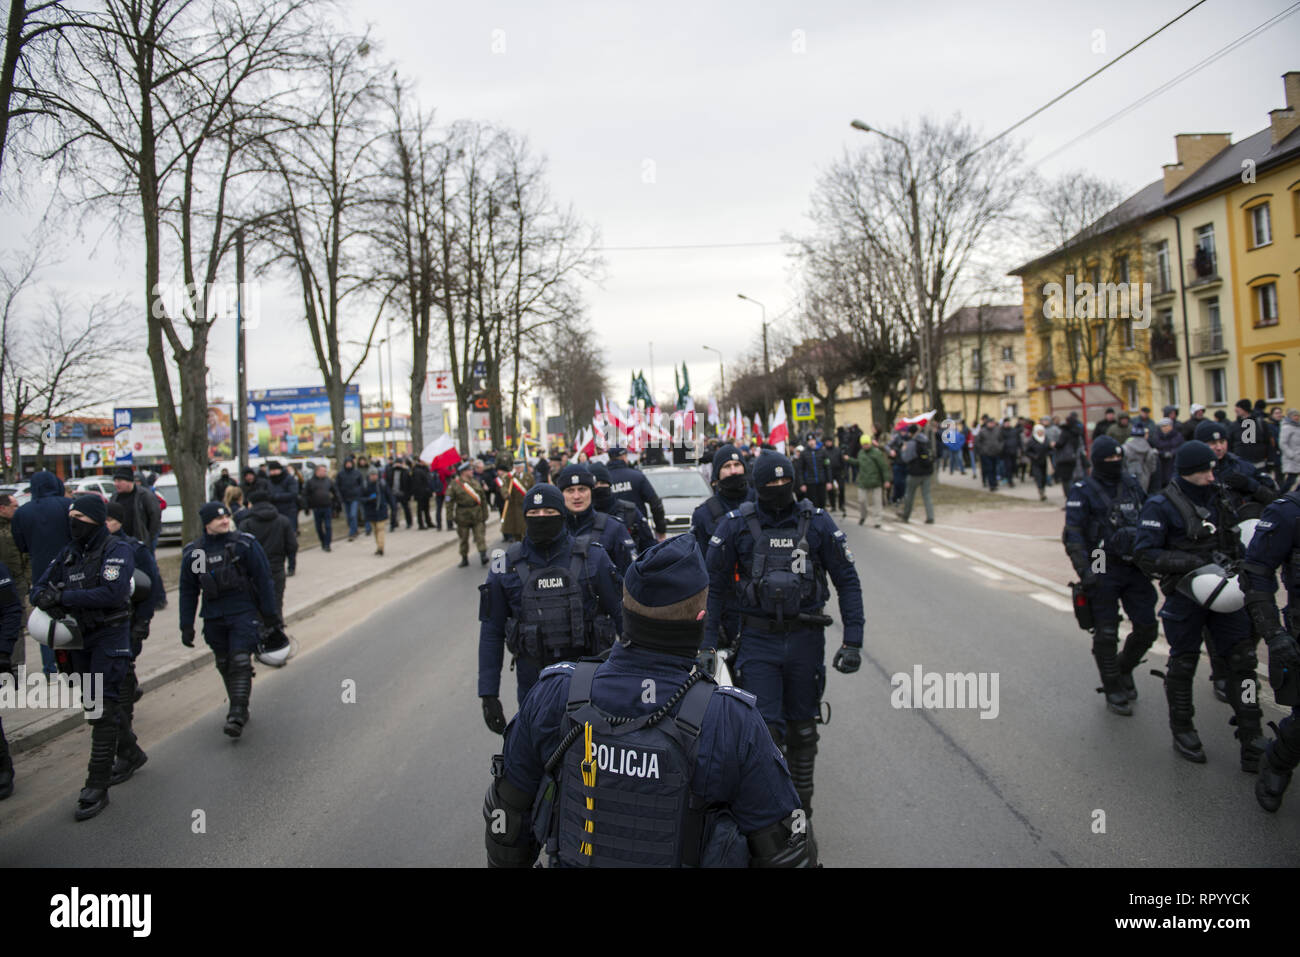 Hajnowka, Poldlaskie, Poland. 23rd Feb, 2019. Police forces seen securing the nationalists on the front during the march.Polish nationalists organized a commemorative march of the 'Cursed Soldiers'' in the city of Hajnowka next to the Belarusian border. The Cursed Soldiers also known as the Doomed Soldiers were anti-communist resistant fighters after WWII, however they were also famous of committing crimes against civilians, mostly ethnic Belarusians. Credit: Attila Husejnow/SOPA Images/ZUMA Wire/Alamy Live News - Stock Image